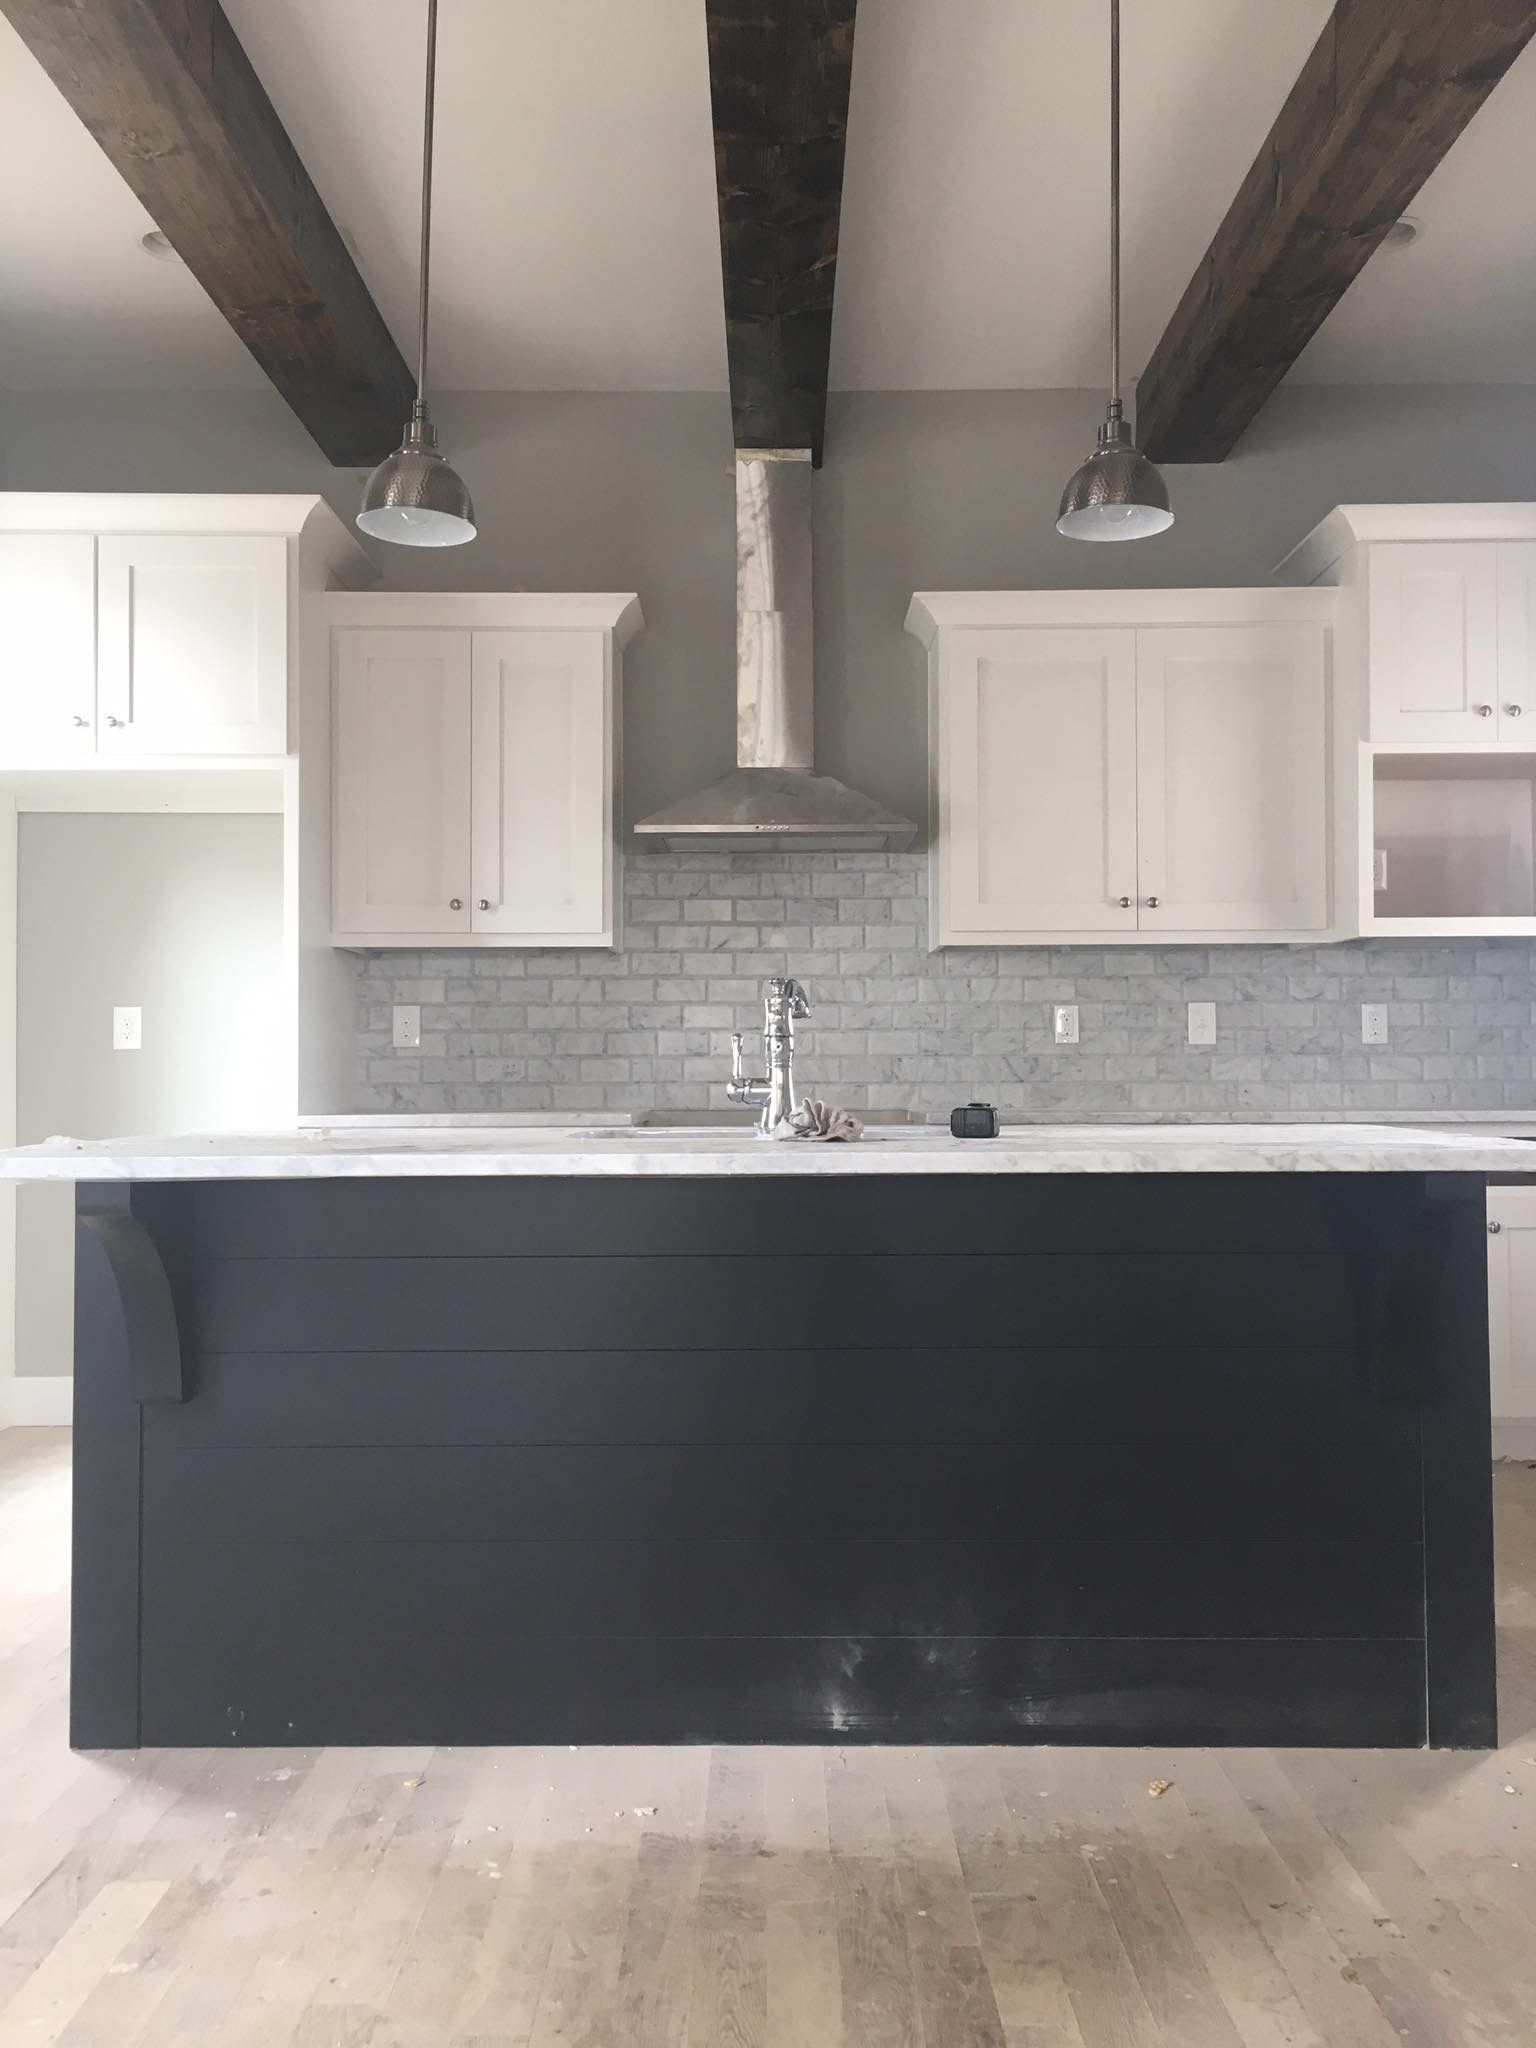 Modern Kitchen Marble Backsplash east nashville classic modern craftsman kitchen. wood beams